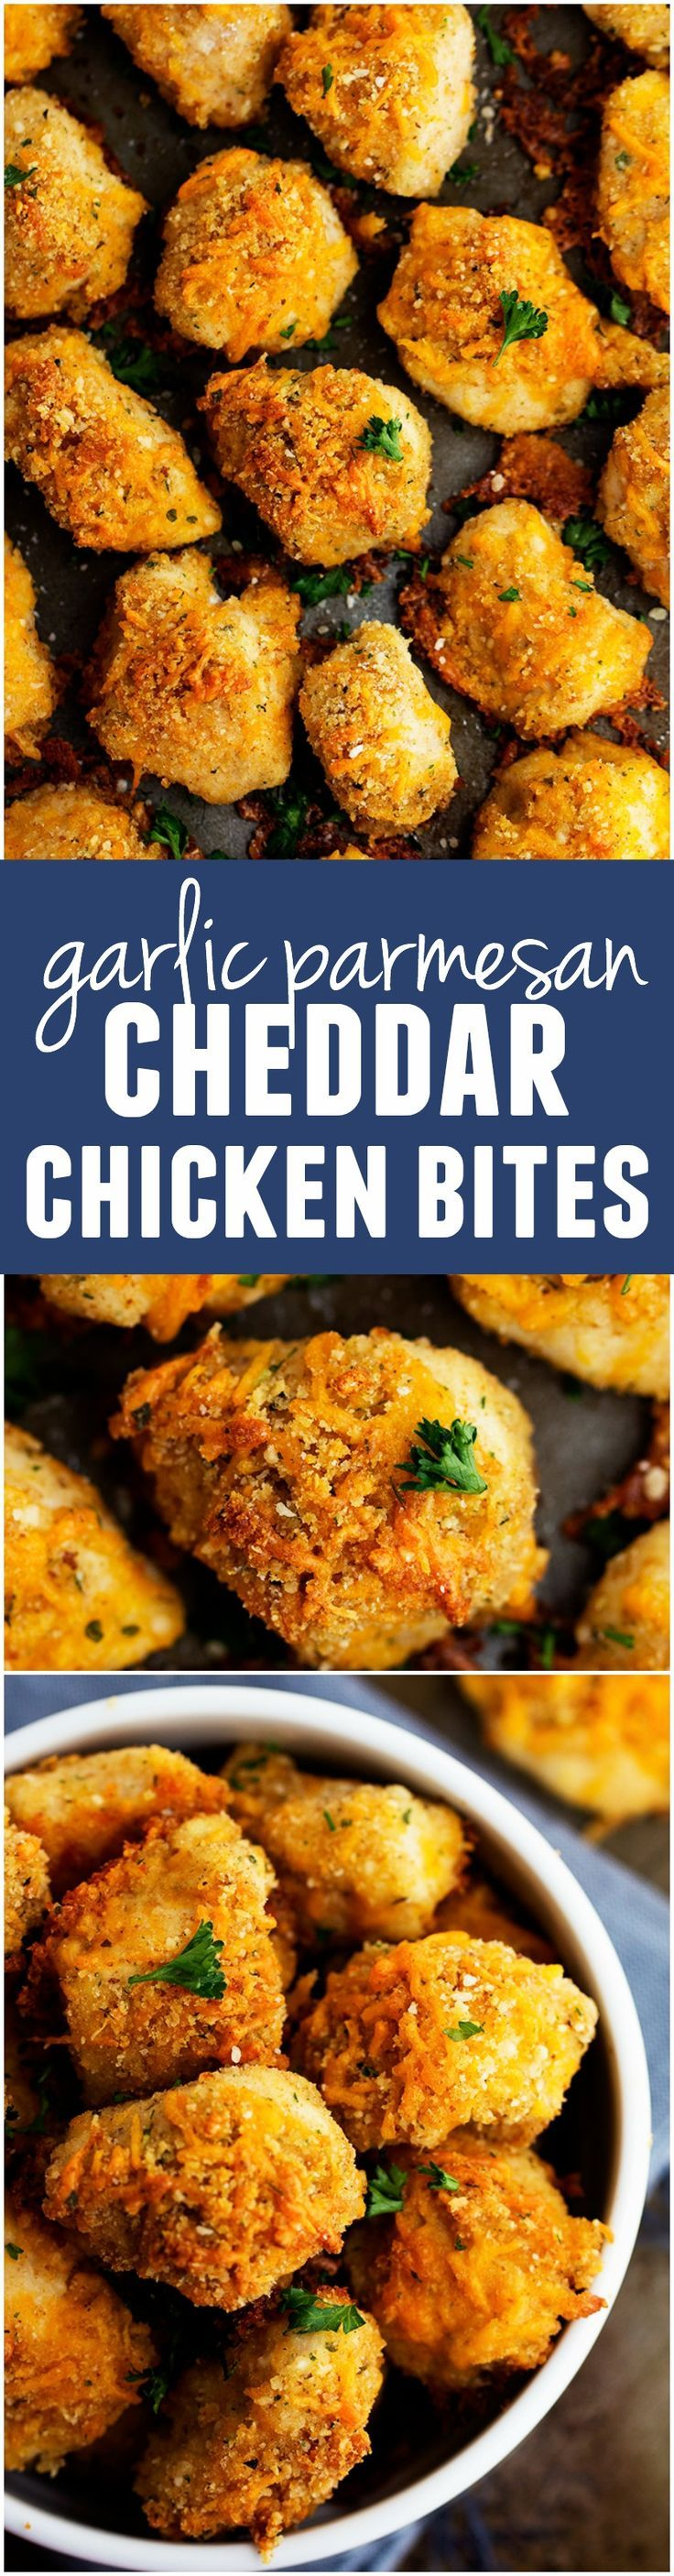 Garlic Parmesan Cheddar Chicken Bites - These will blow your mind!! They are crispy tender and juicy on the inside and the flavor is amazing!